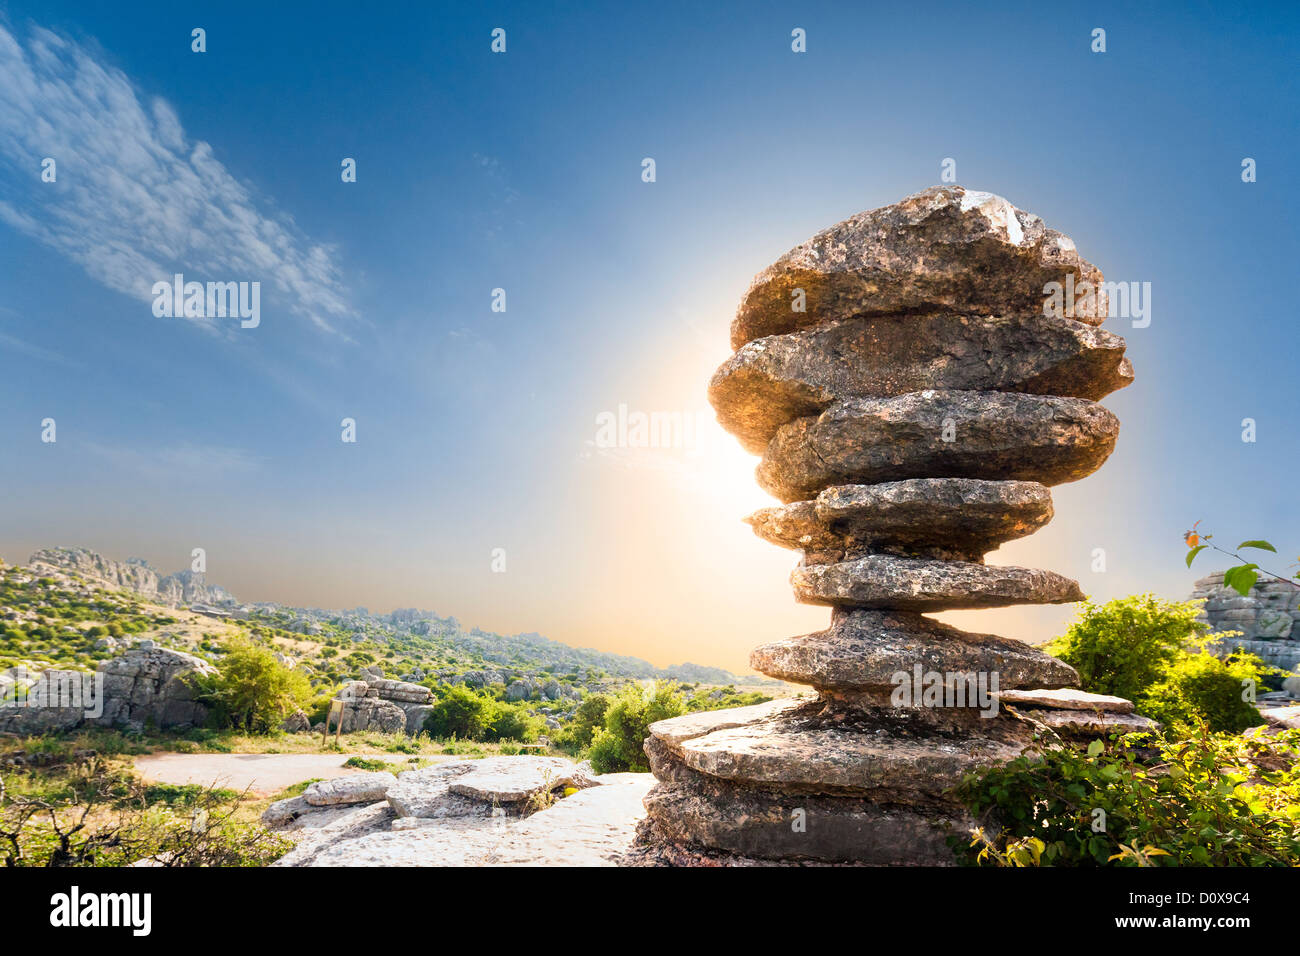 Famous limestone rock formation El Tornillo, the Screw, Corkscrew, in Torcal de Antequera a Karst mountain nature - Stock Image